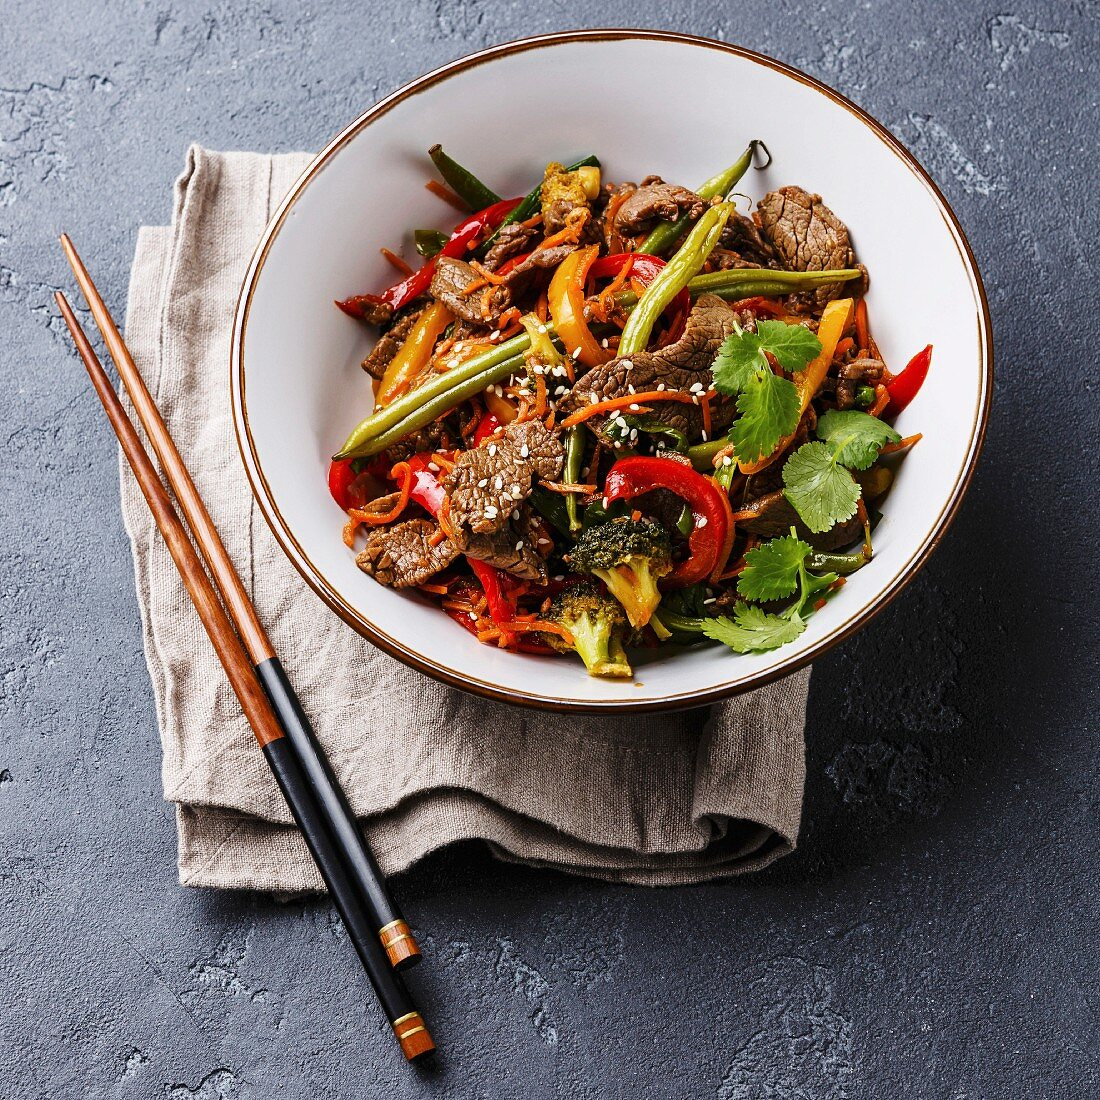 Szechuan beef stir fry with vegetables in bowl on dark stone background